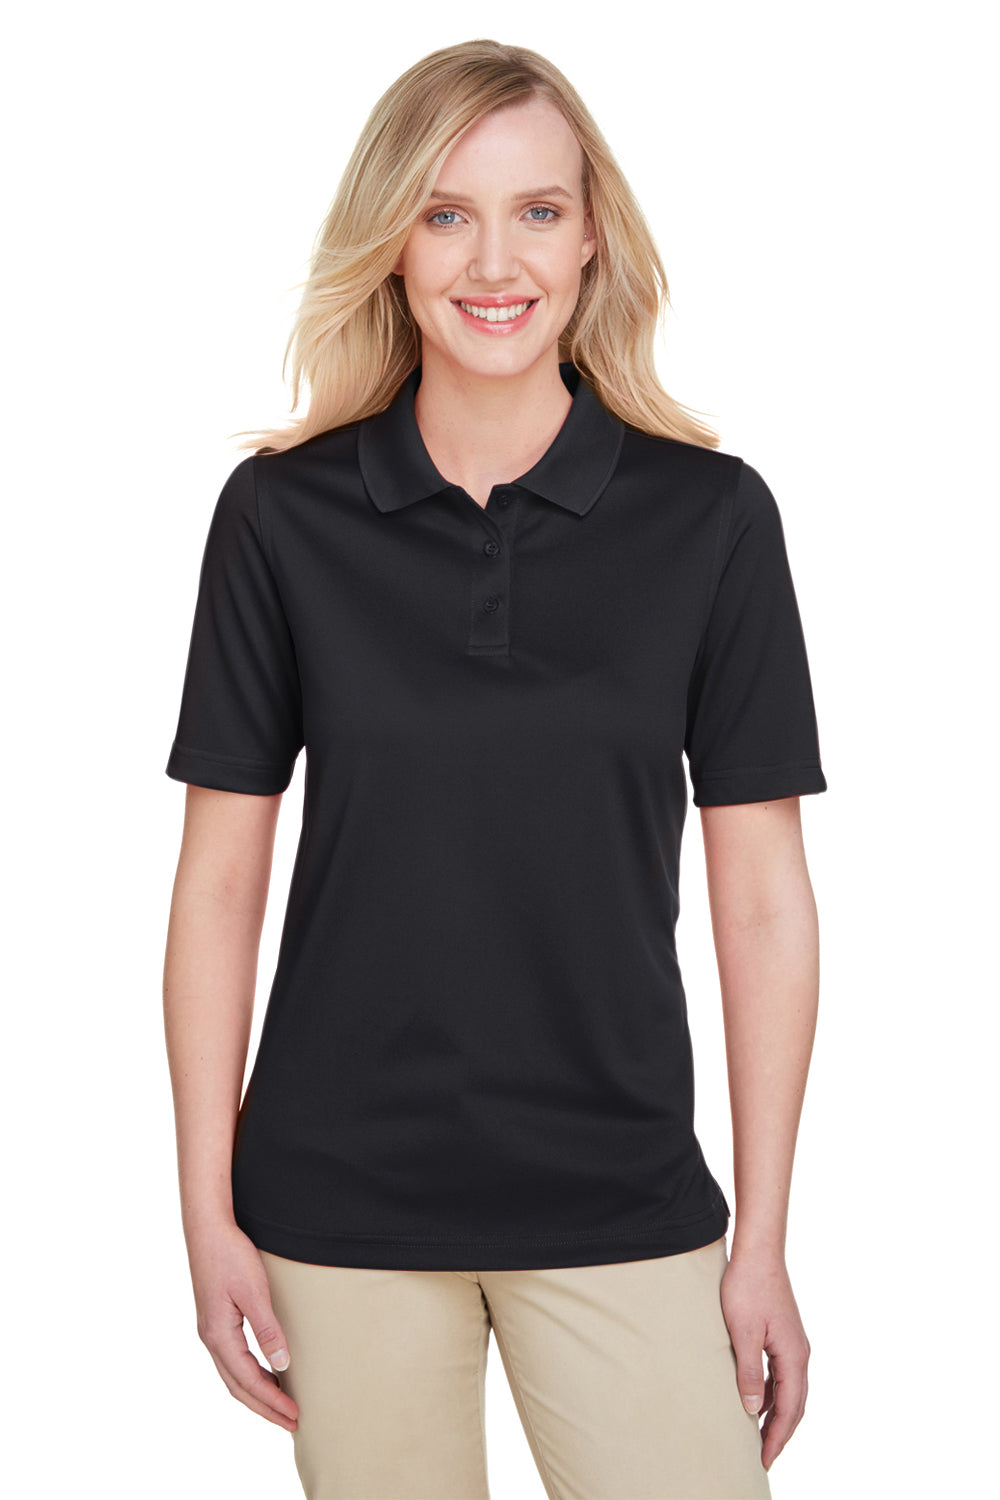 Harriton M348W Womens Advantage Performance Moisture Wicking Short Sleeve Polo Shirt Black Front